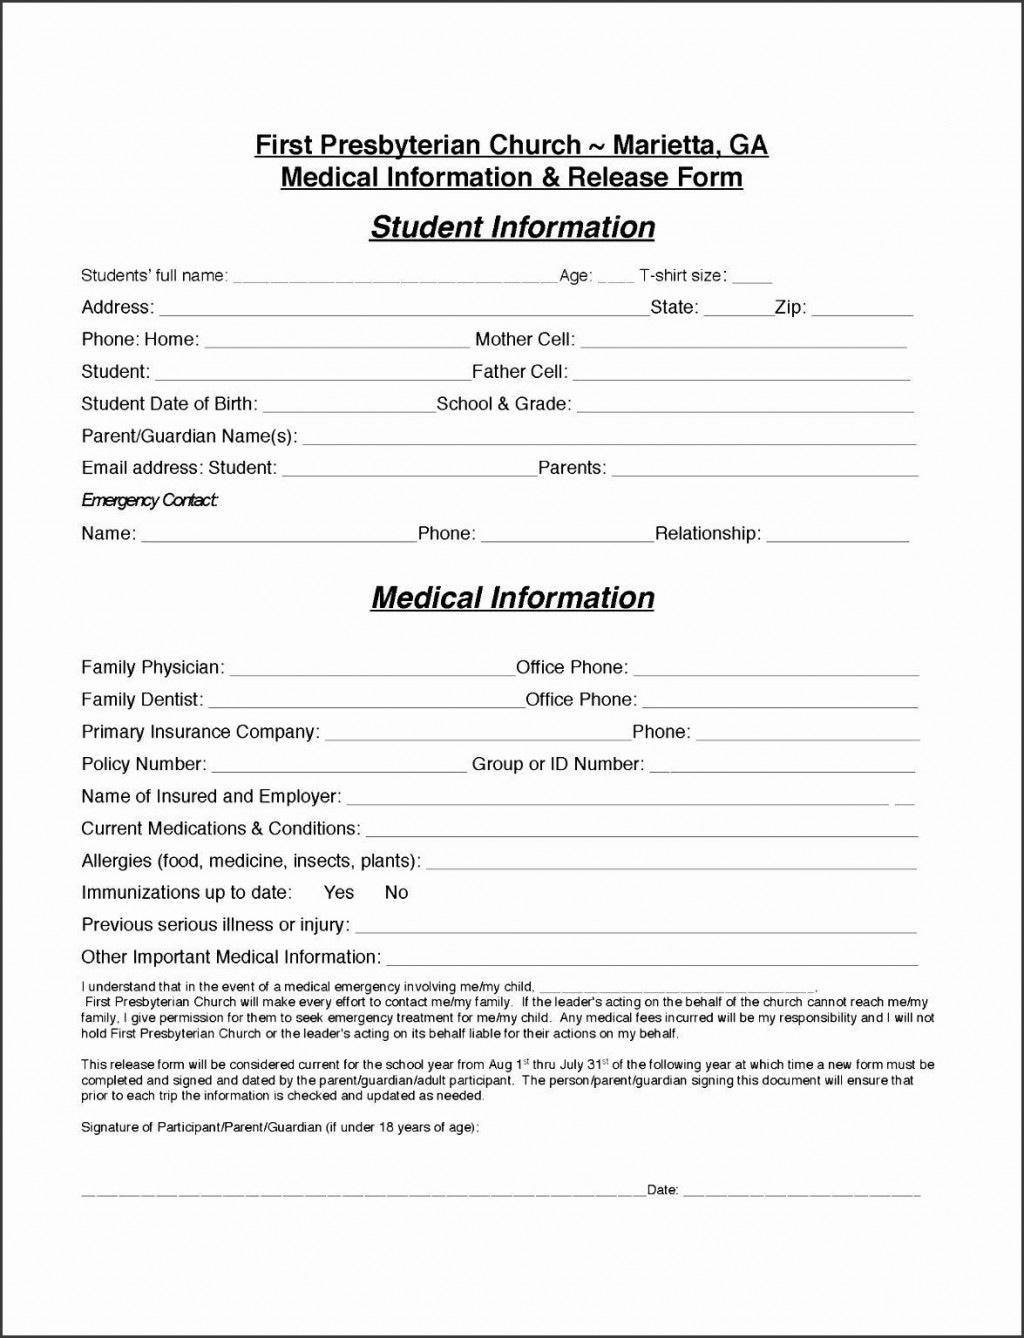 008 Archaicawful Client Info Form Template High Definition  Free Photography Information DownloadLarge